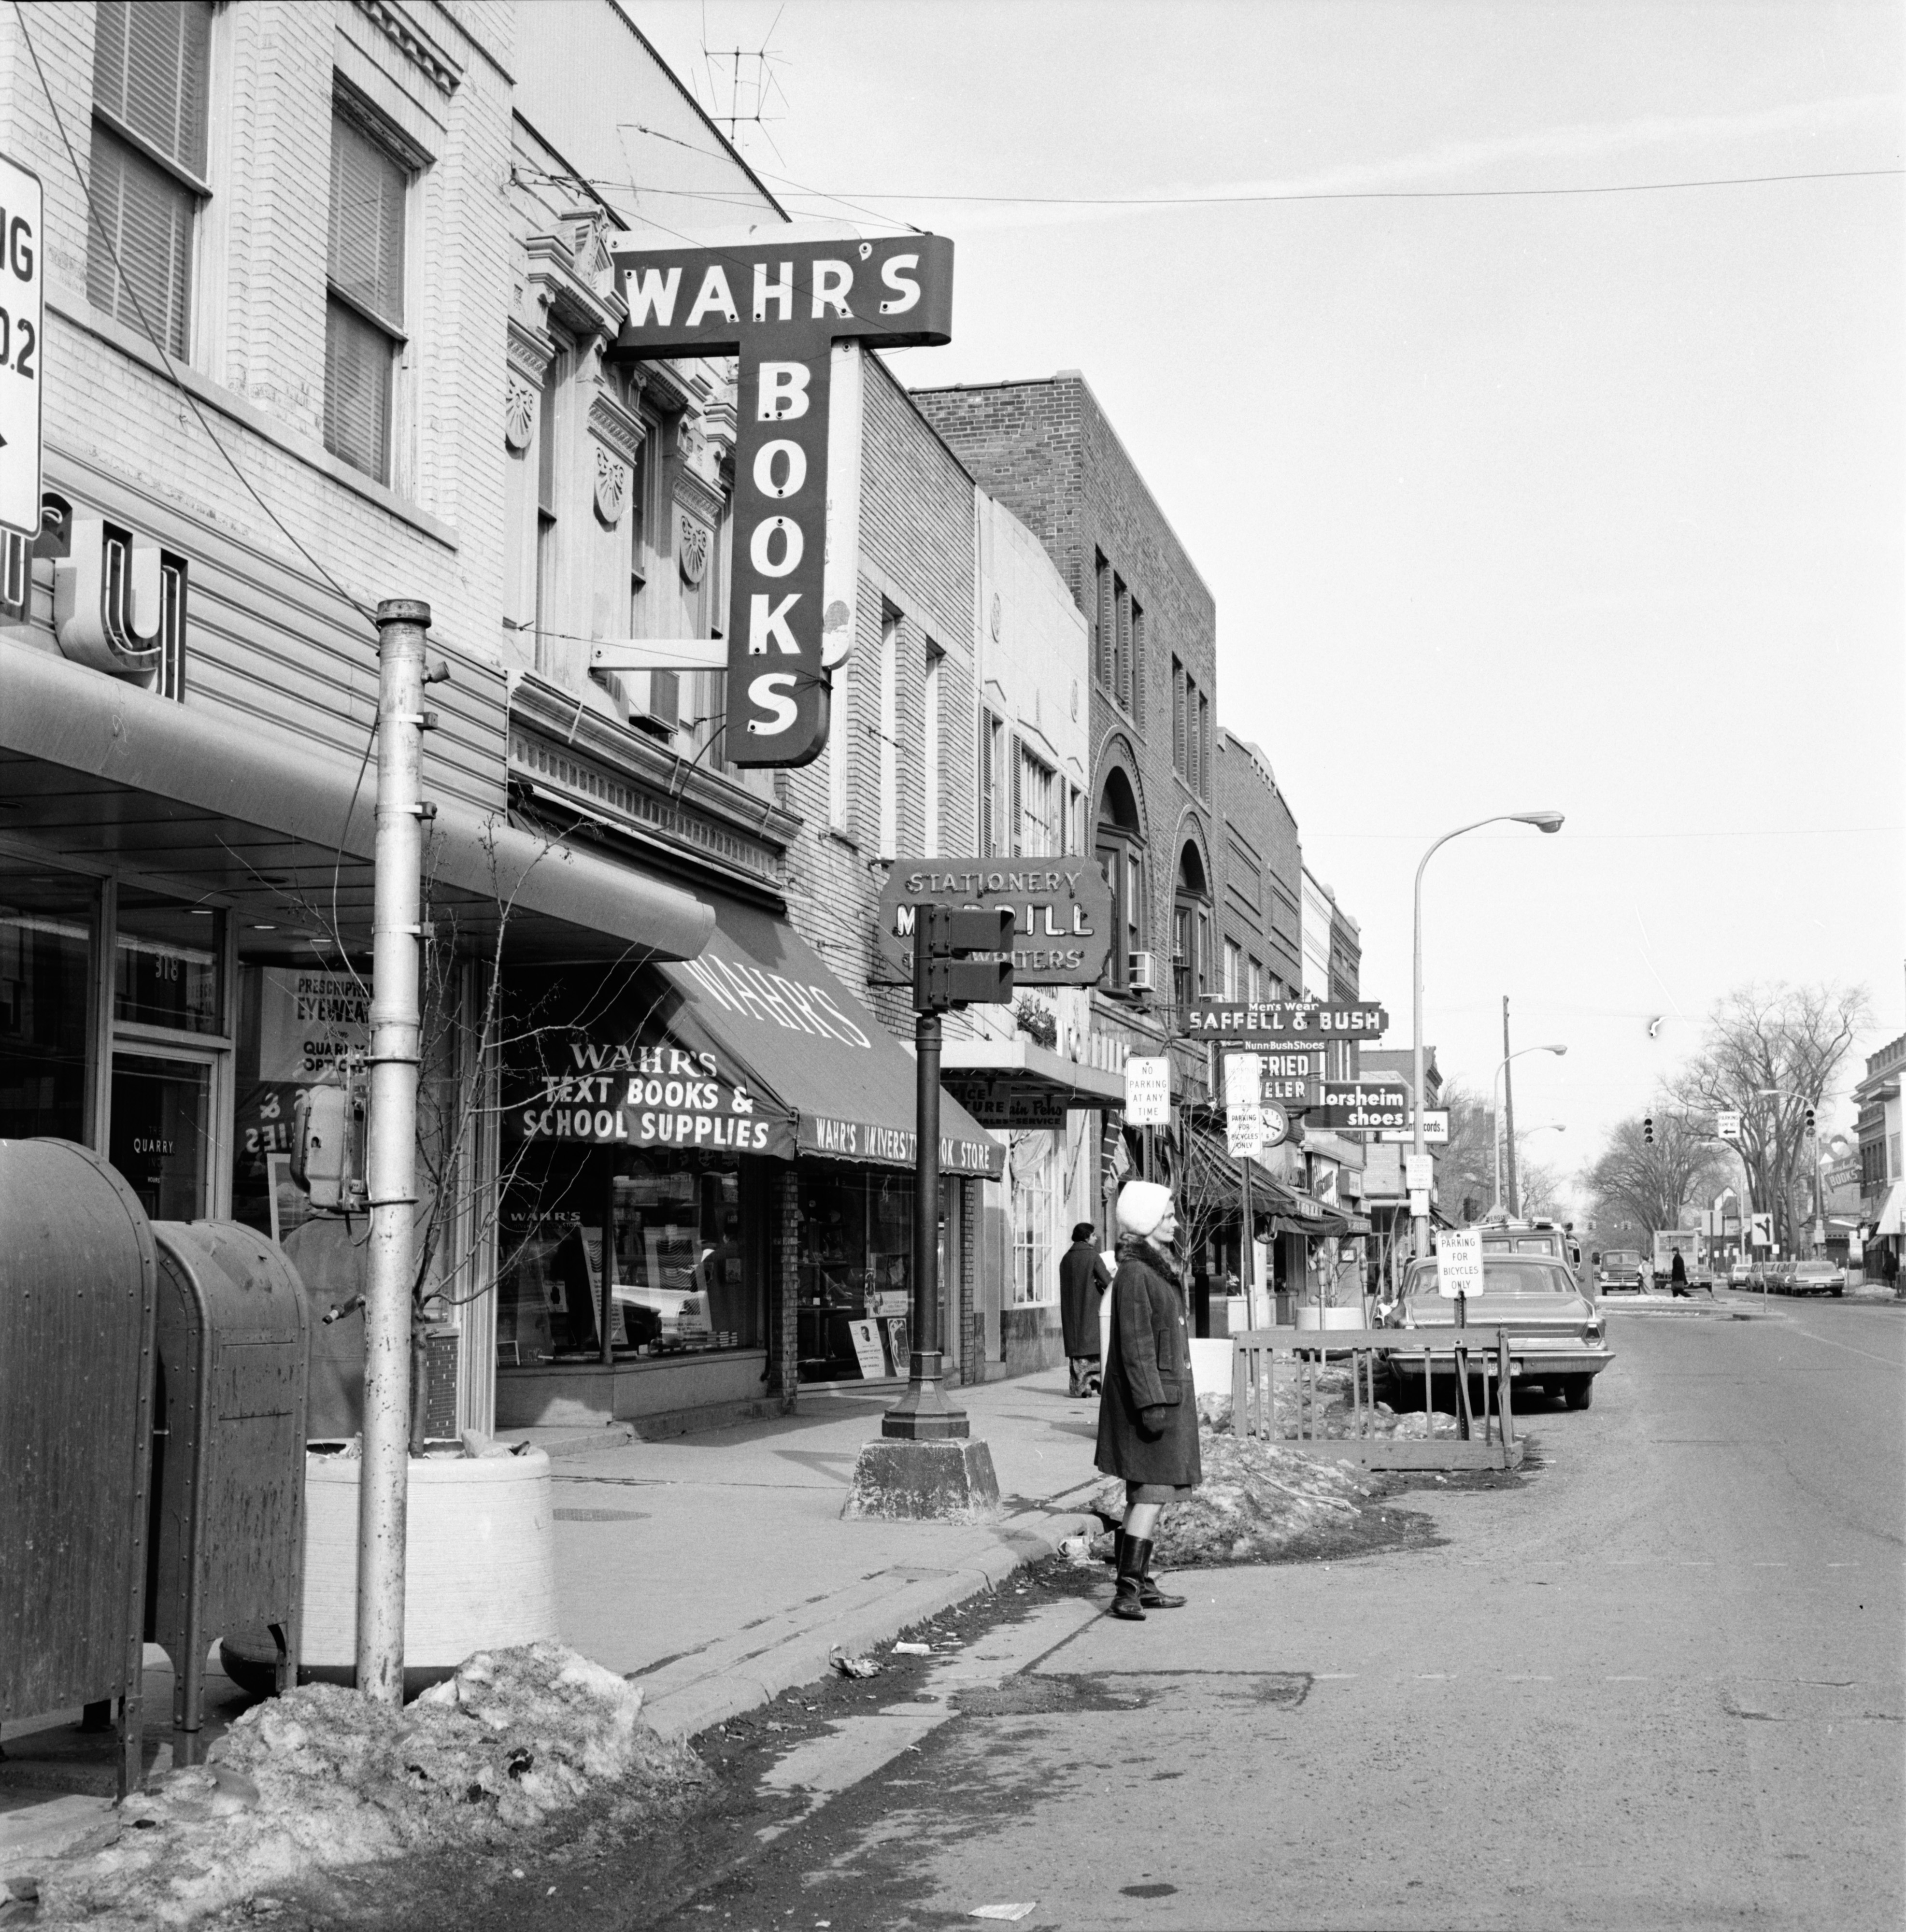 Stores along S State St image